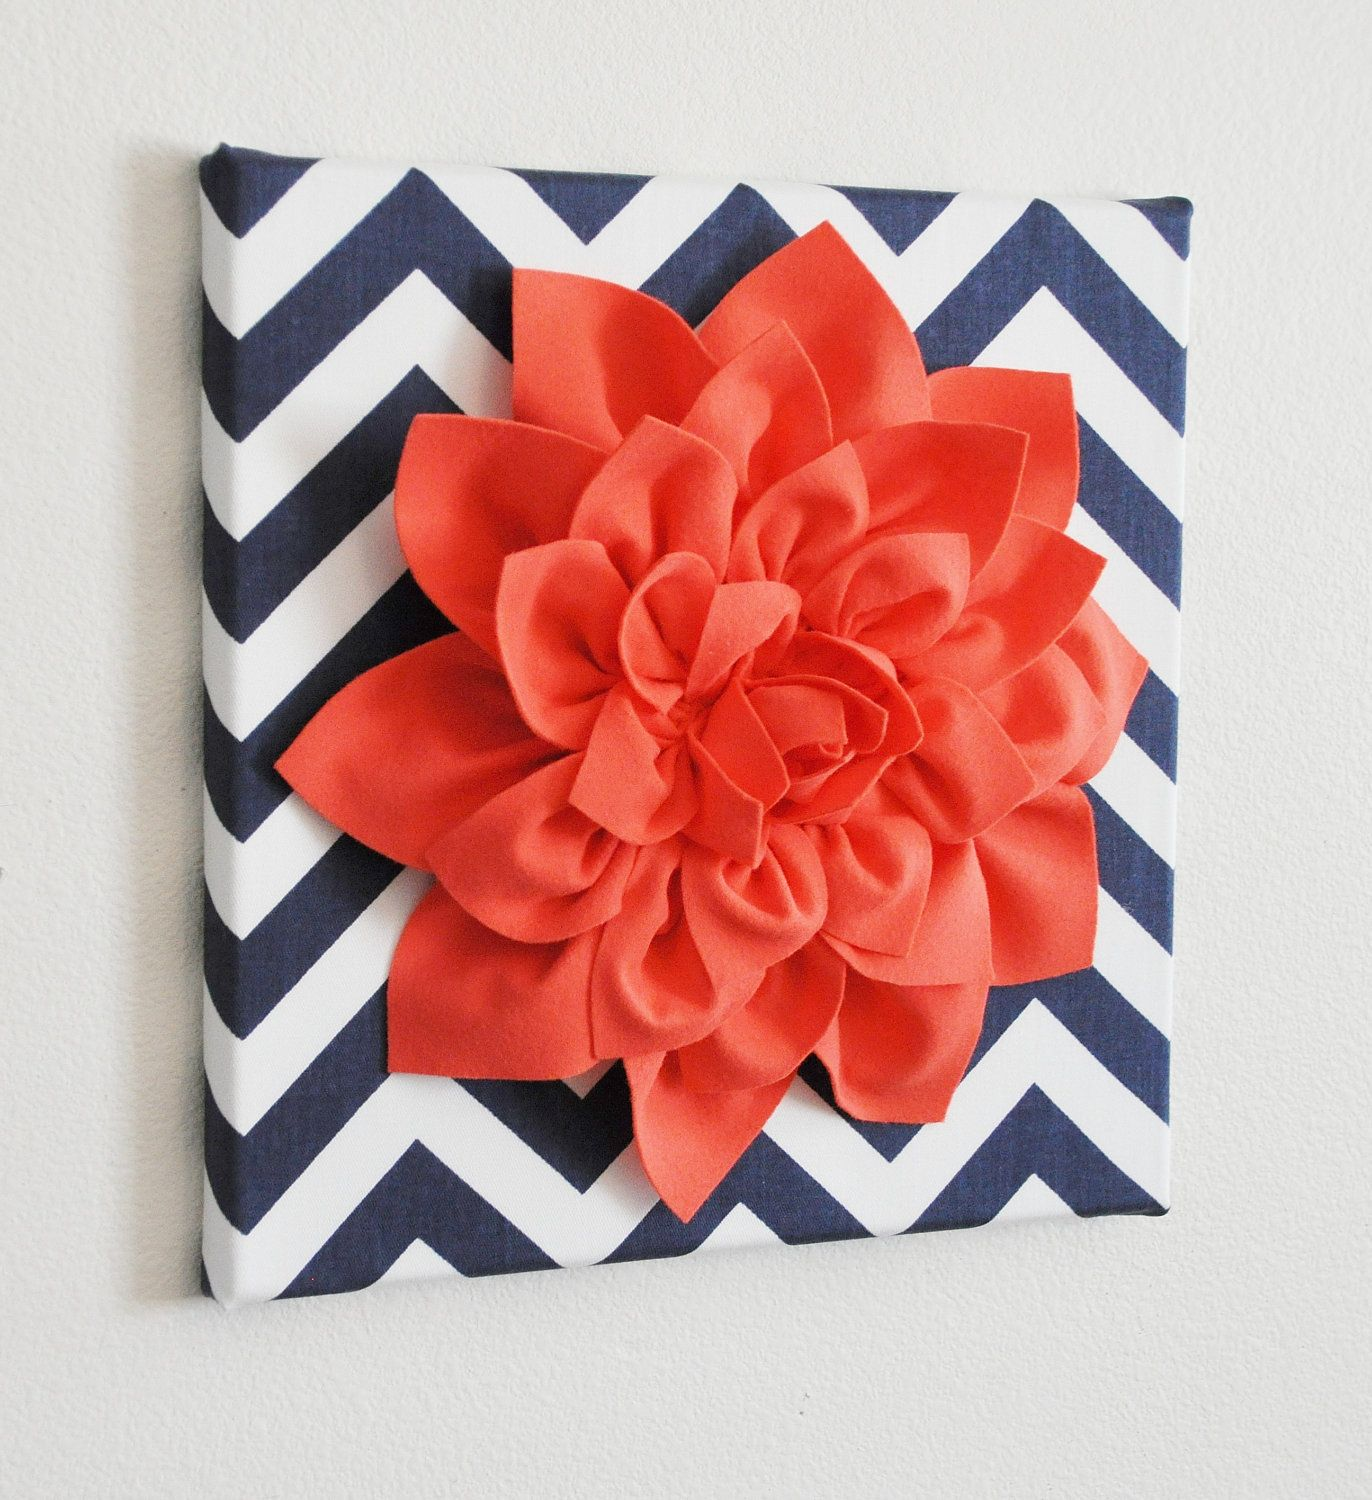 Wall flower art coral dahlia on navy and white chevron x